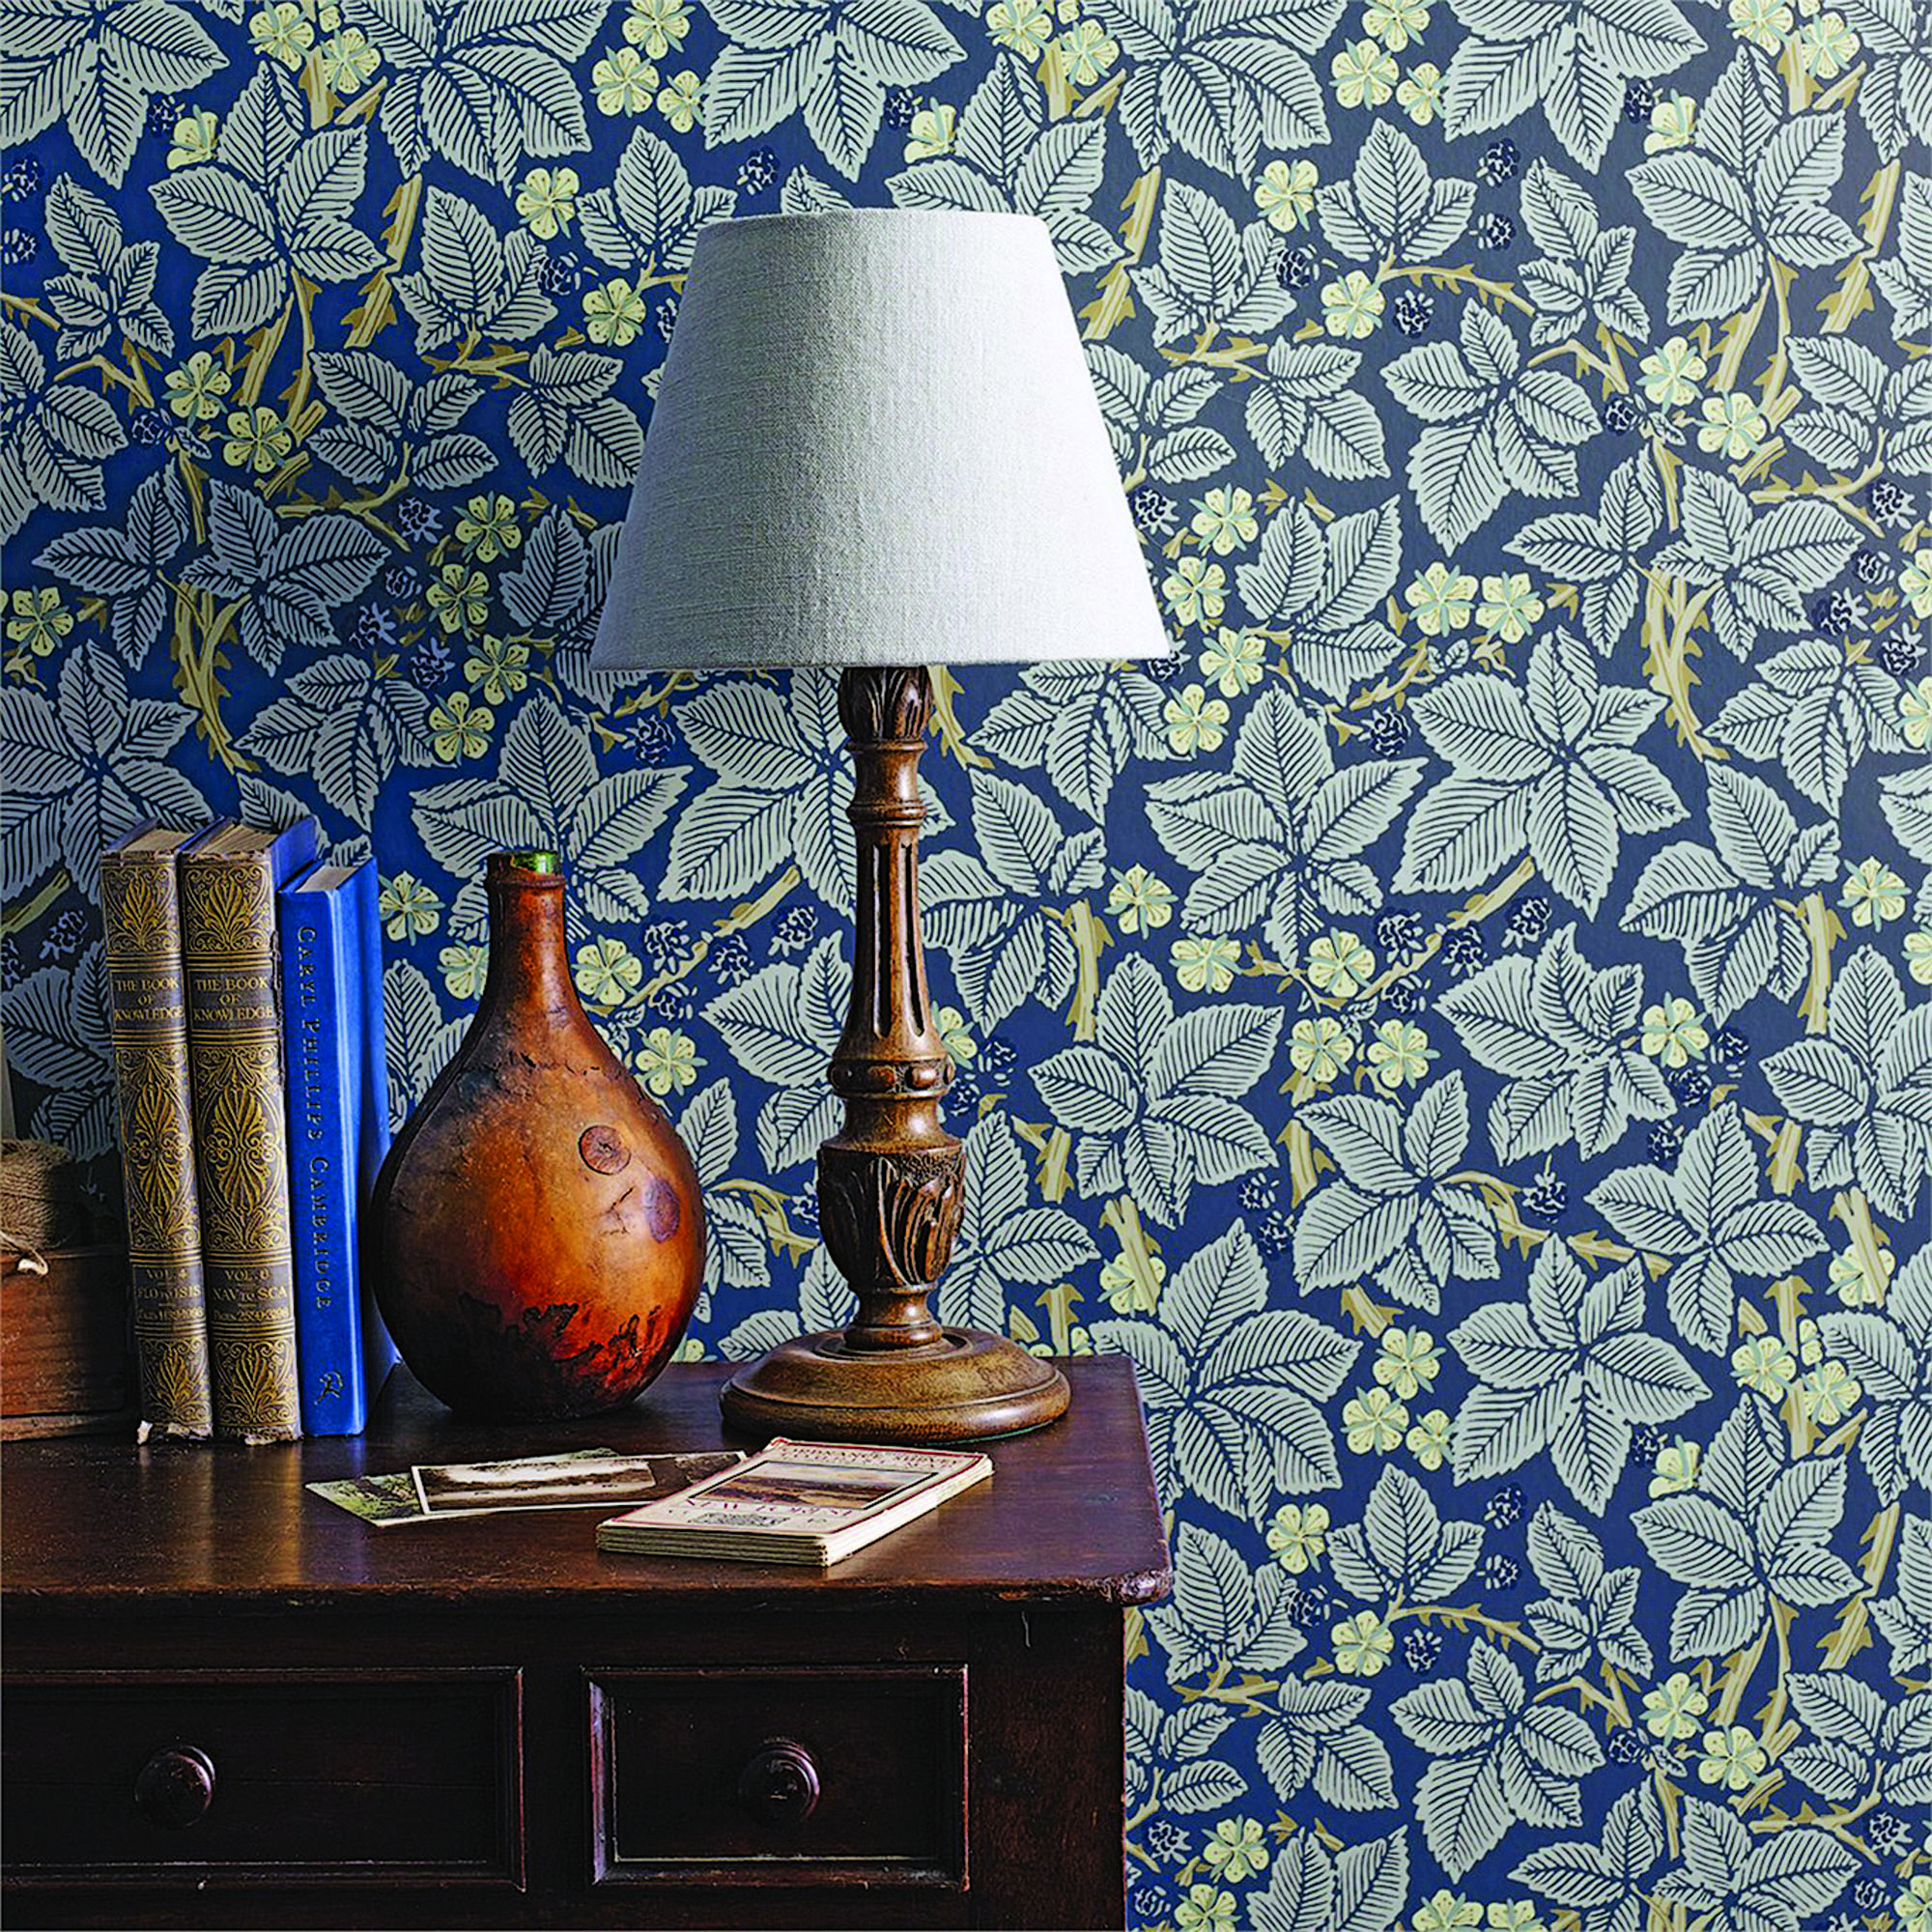 Authentic reproductions of 'Acanthus', 'Bramble', William Morris Wallpaper